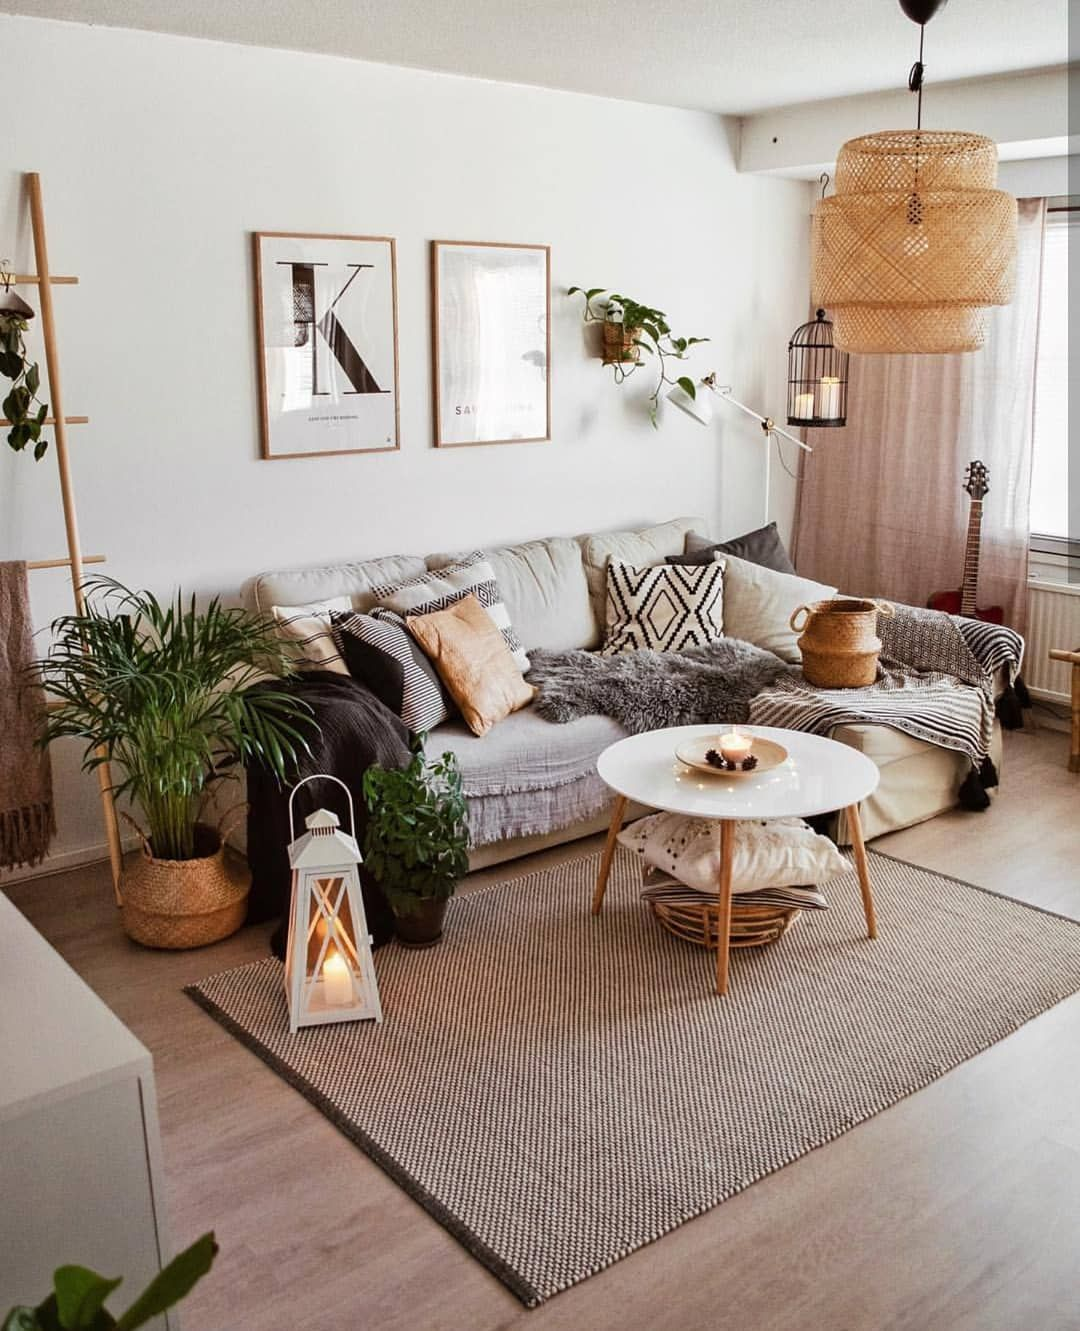 Bohemian Inspirations On Instagram Let S Talk About Neutraldecor The Earth Tones About This G Living Room Scandinavian Elegant Dorm Room Dorm Room Decor